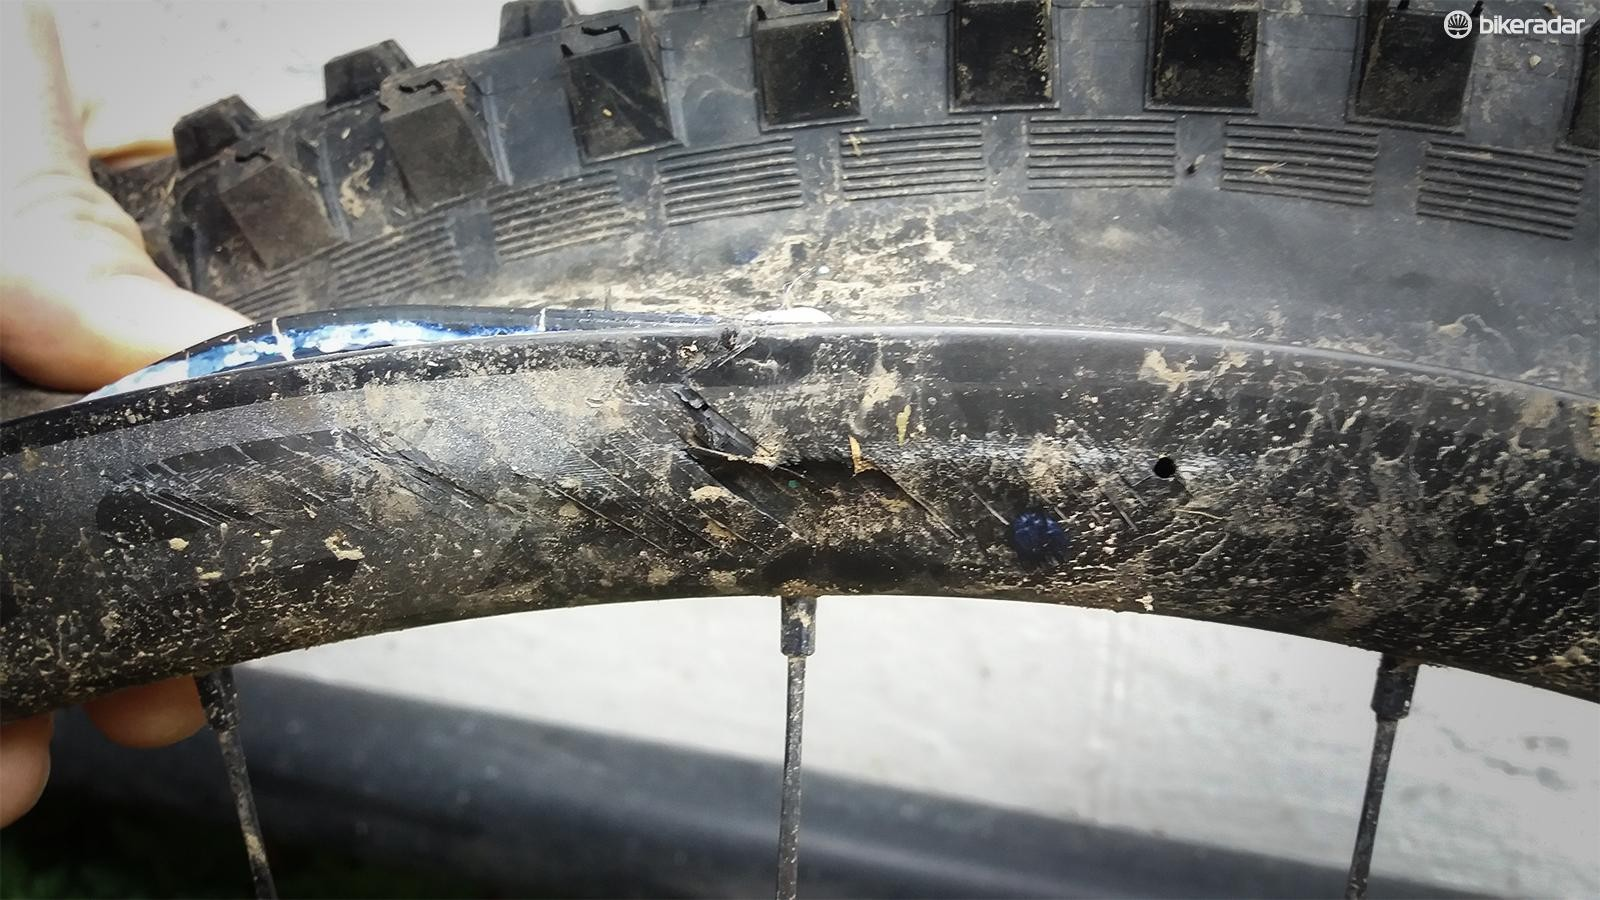 UK tester Seb Stott has managed to crack two Bontrager Line 30 rims